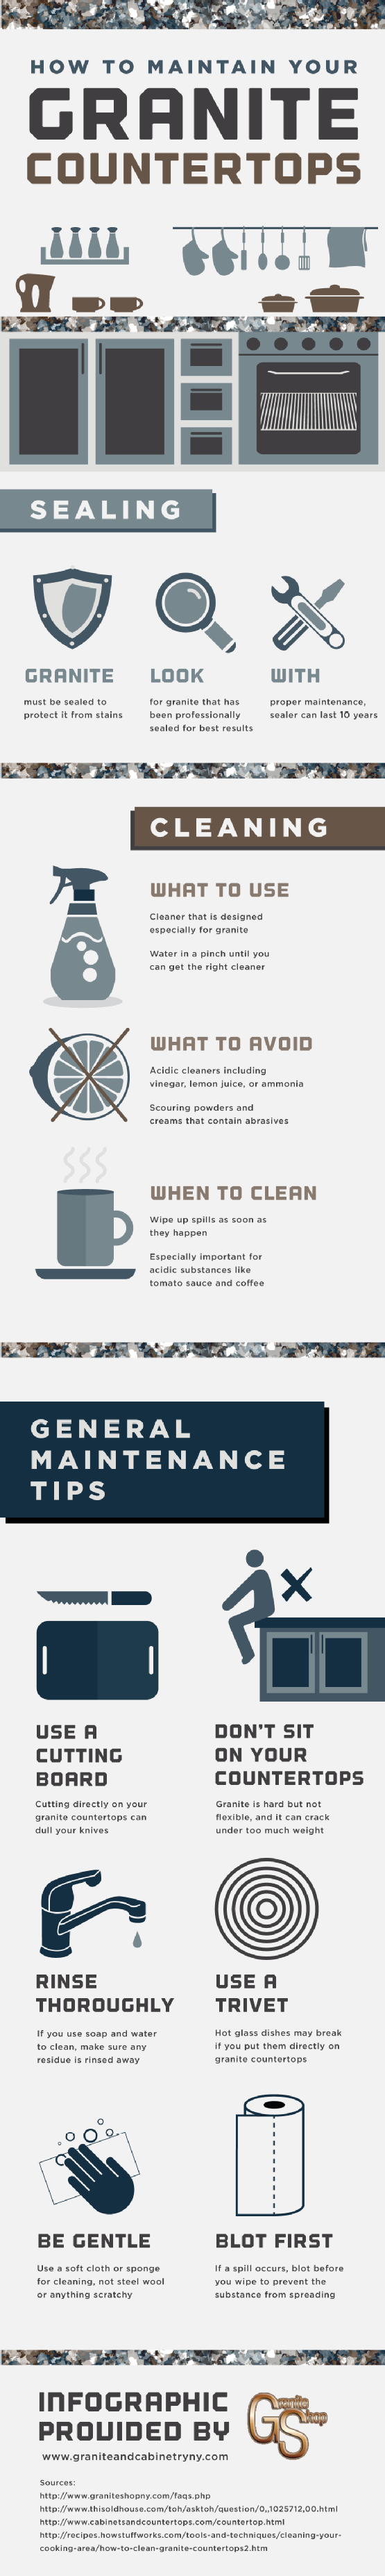 How To Maintain Your Granite Countertops [Infographic]